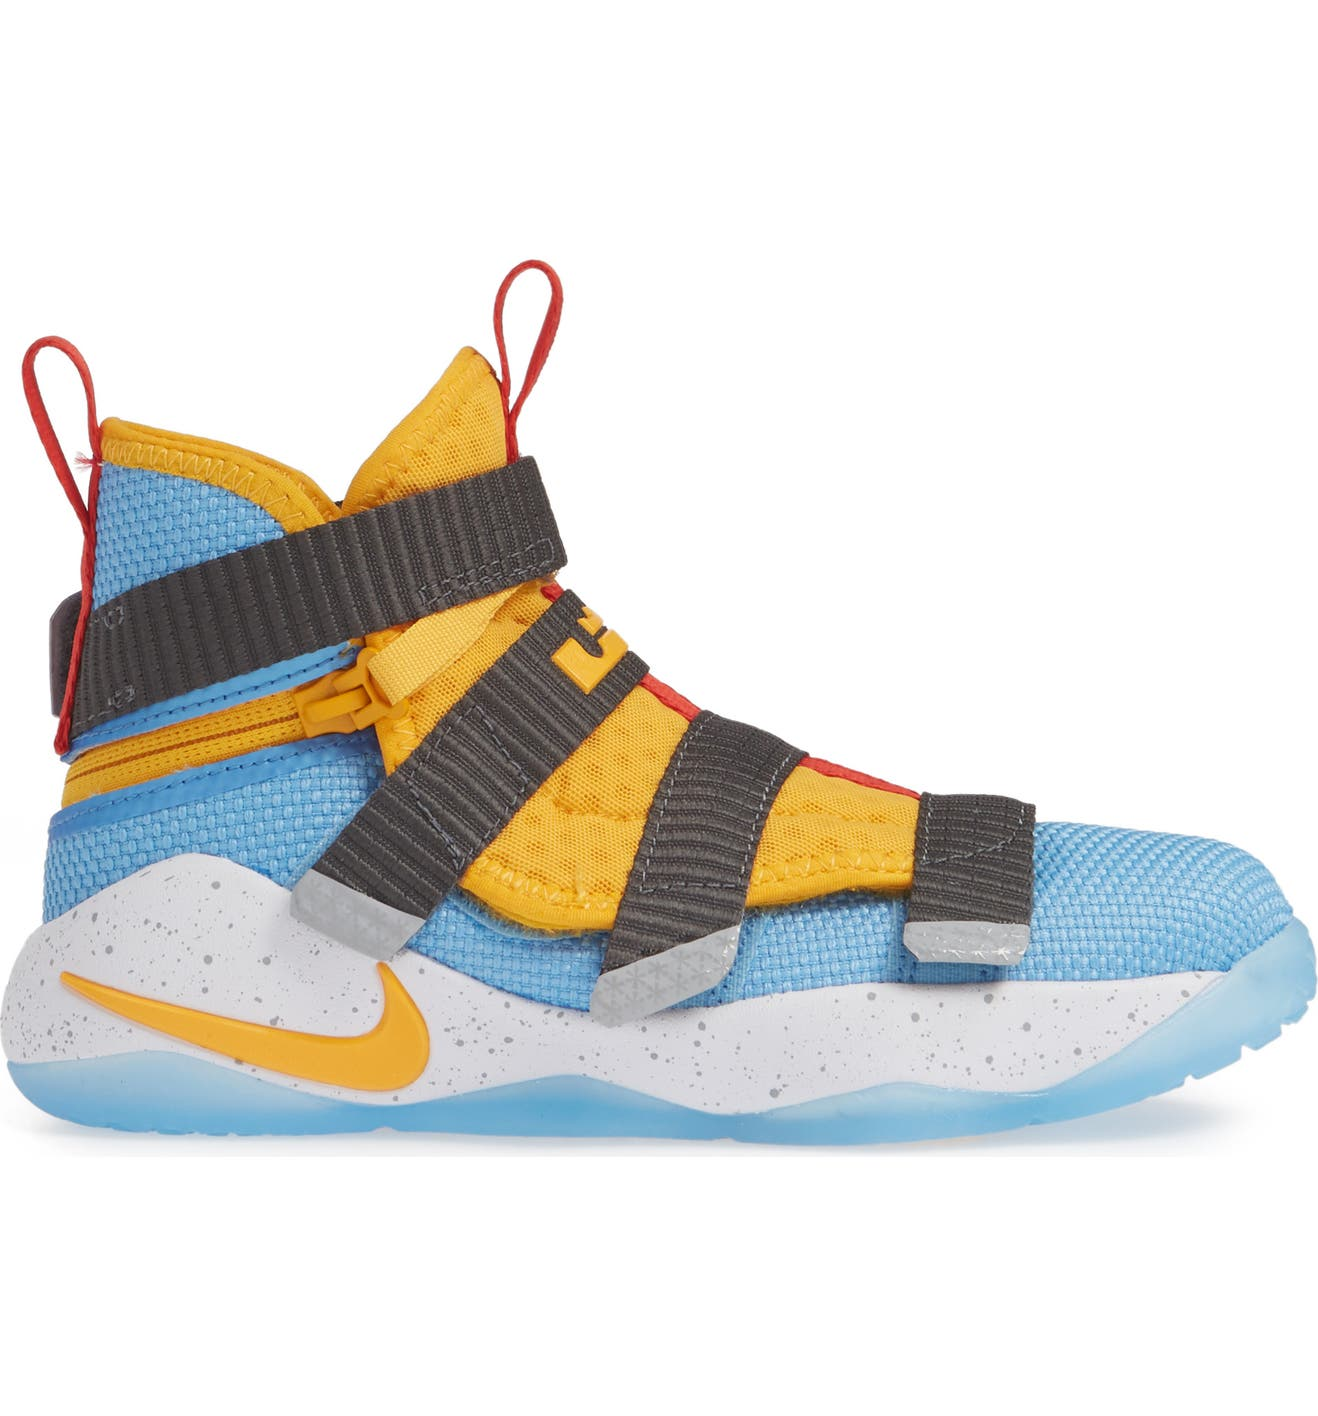 87ed33cb124 Nike LeBron Soldier XI FlyEase High Top Sneaker (Toddler